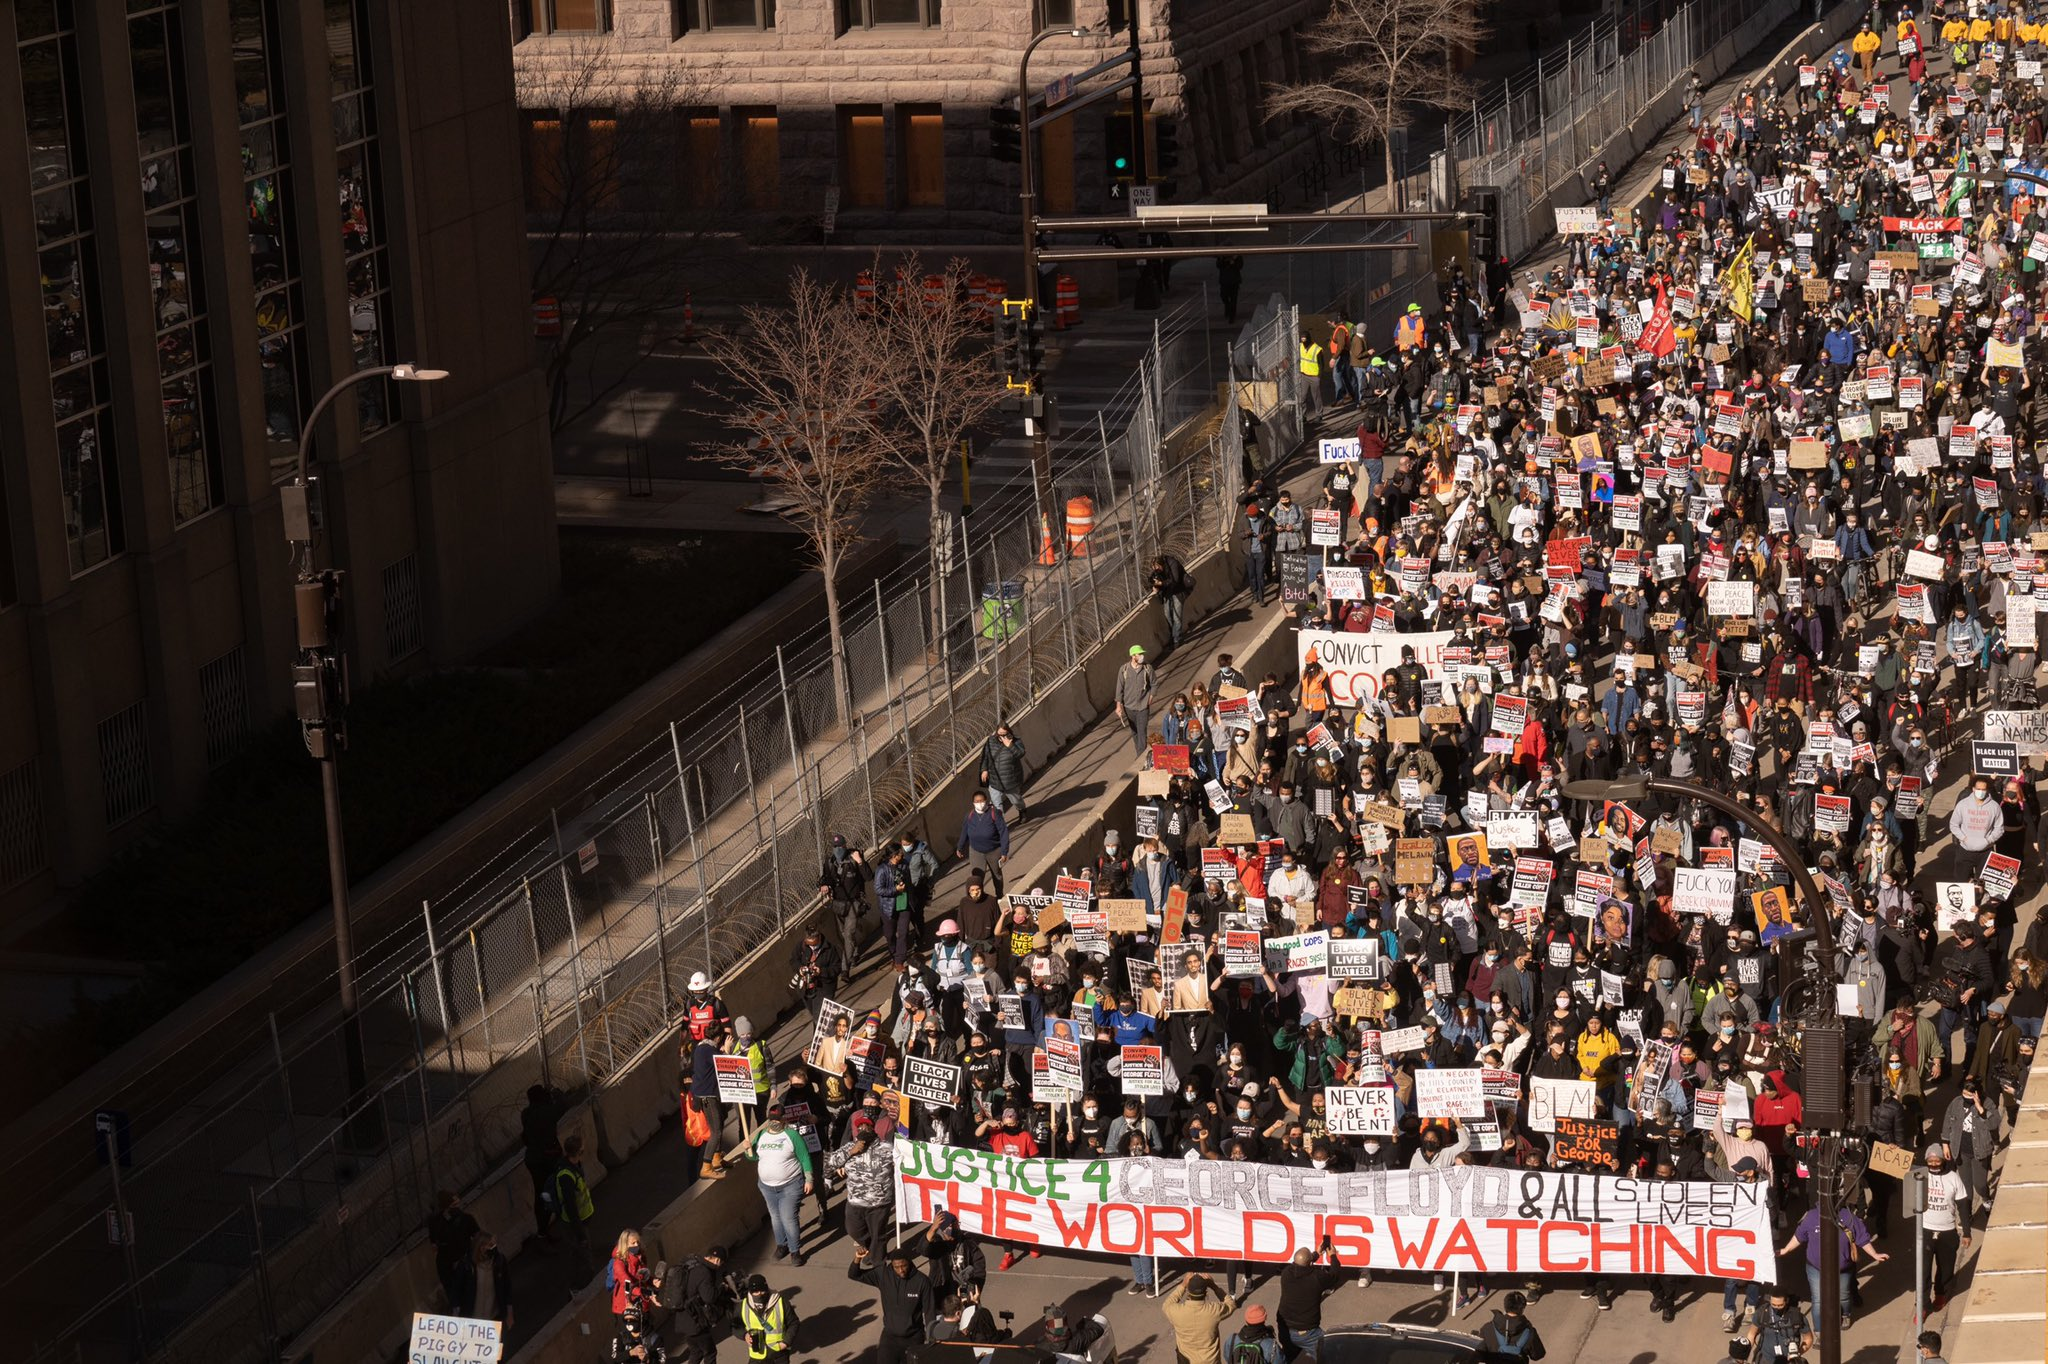 1000+ Protesters March in Minneapolis During Beginning of Derek Chauvin Trial